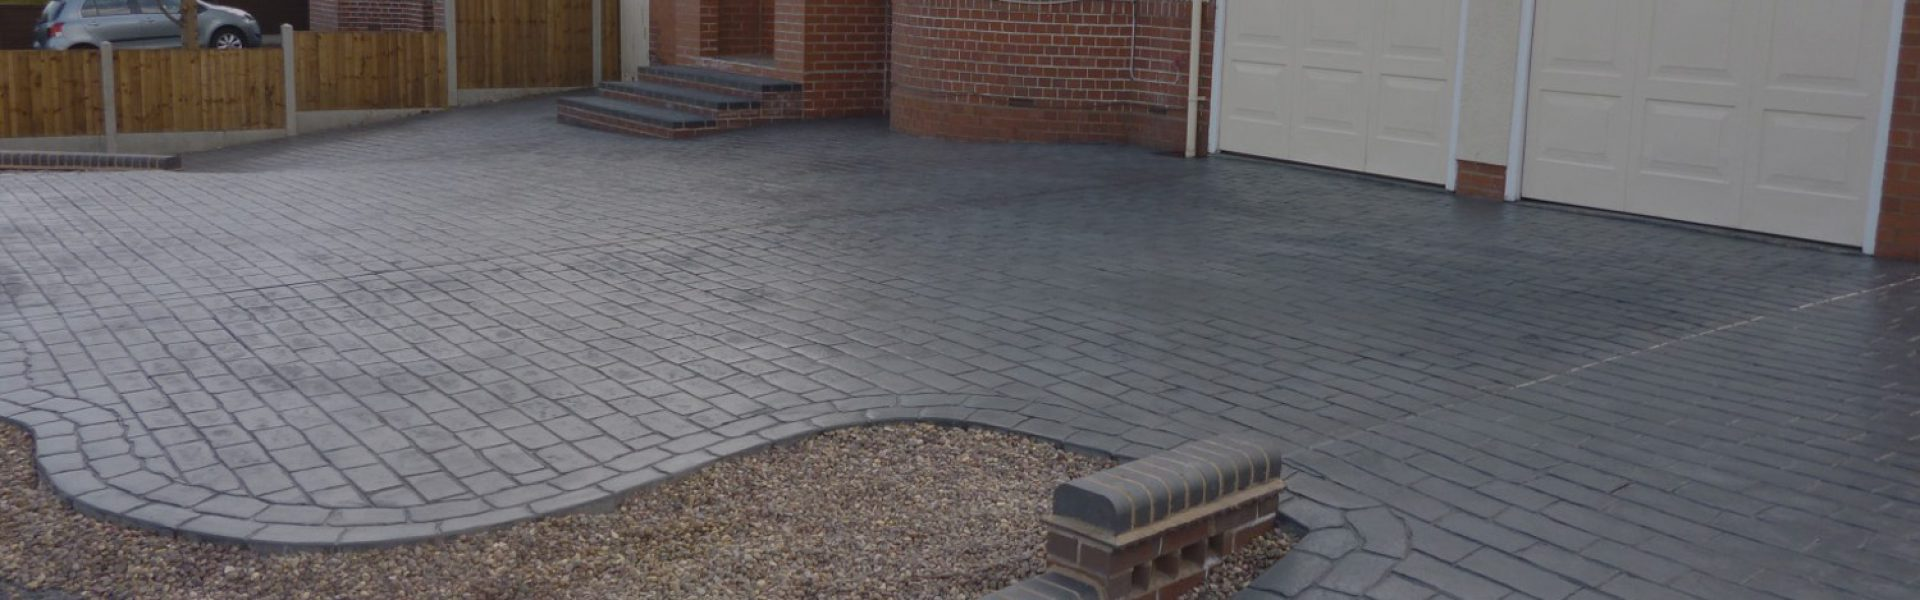 Asset Paving Systems